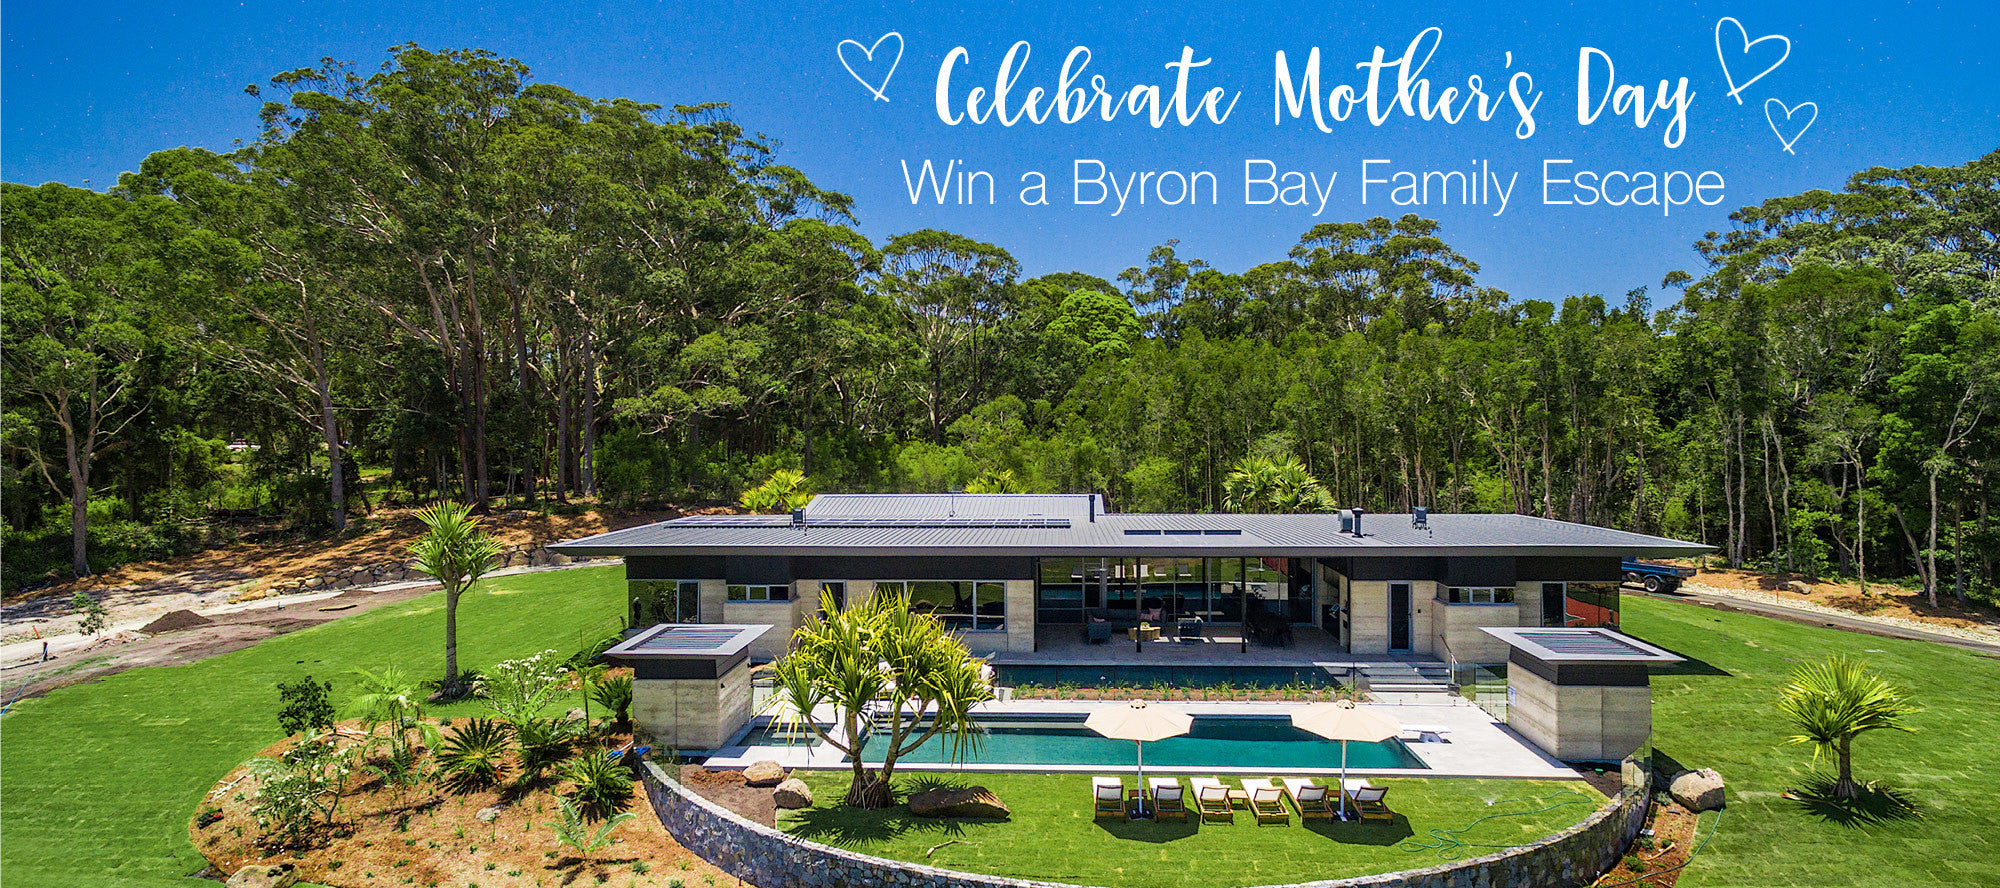 Celebrate Mother's Day and WIN